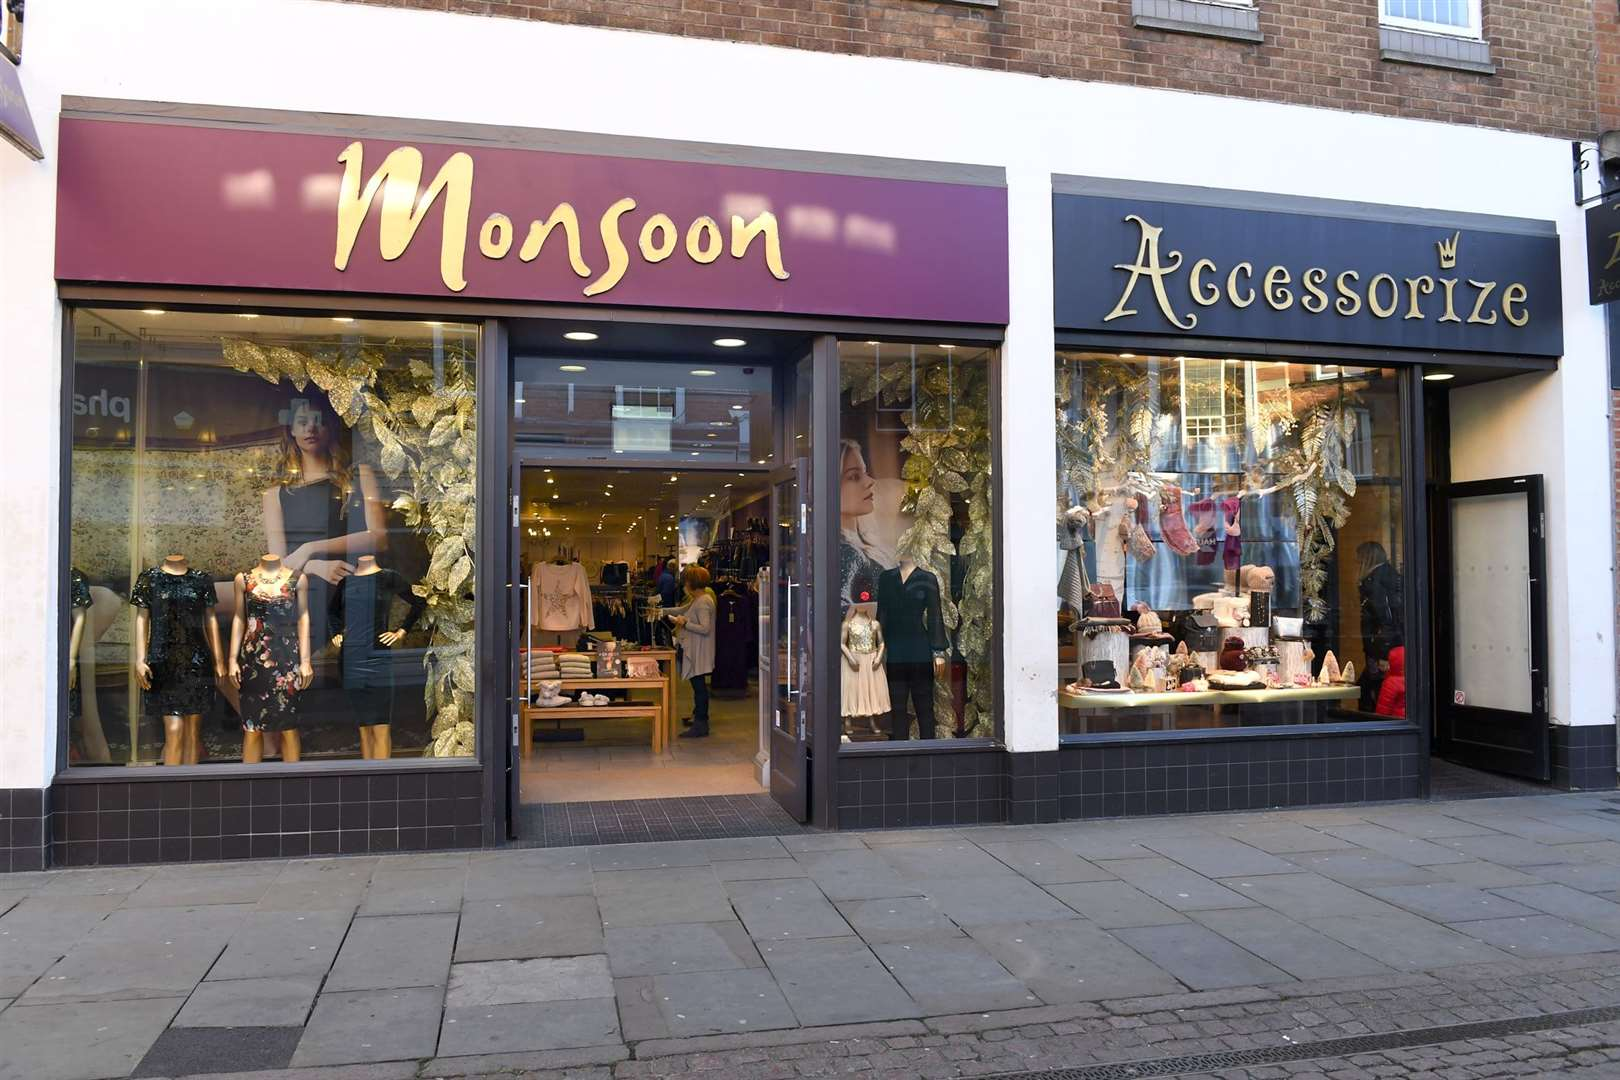 Monsoon Accessorize, the business behind popular High Street fashion retailers Monsoon and Accessorize have announced they are closing 35 stores across the UK with 2 in The Three Counties